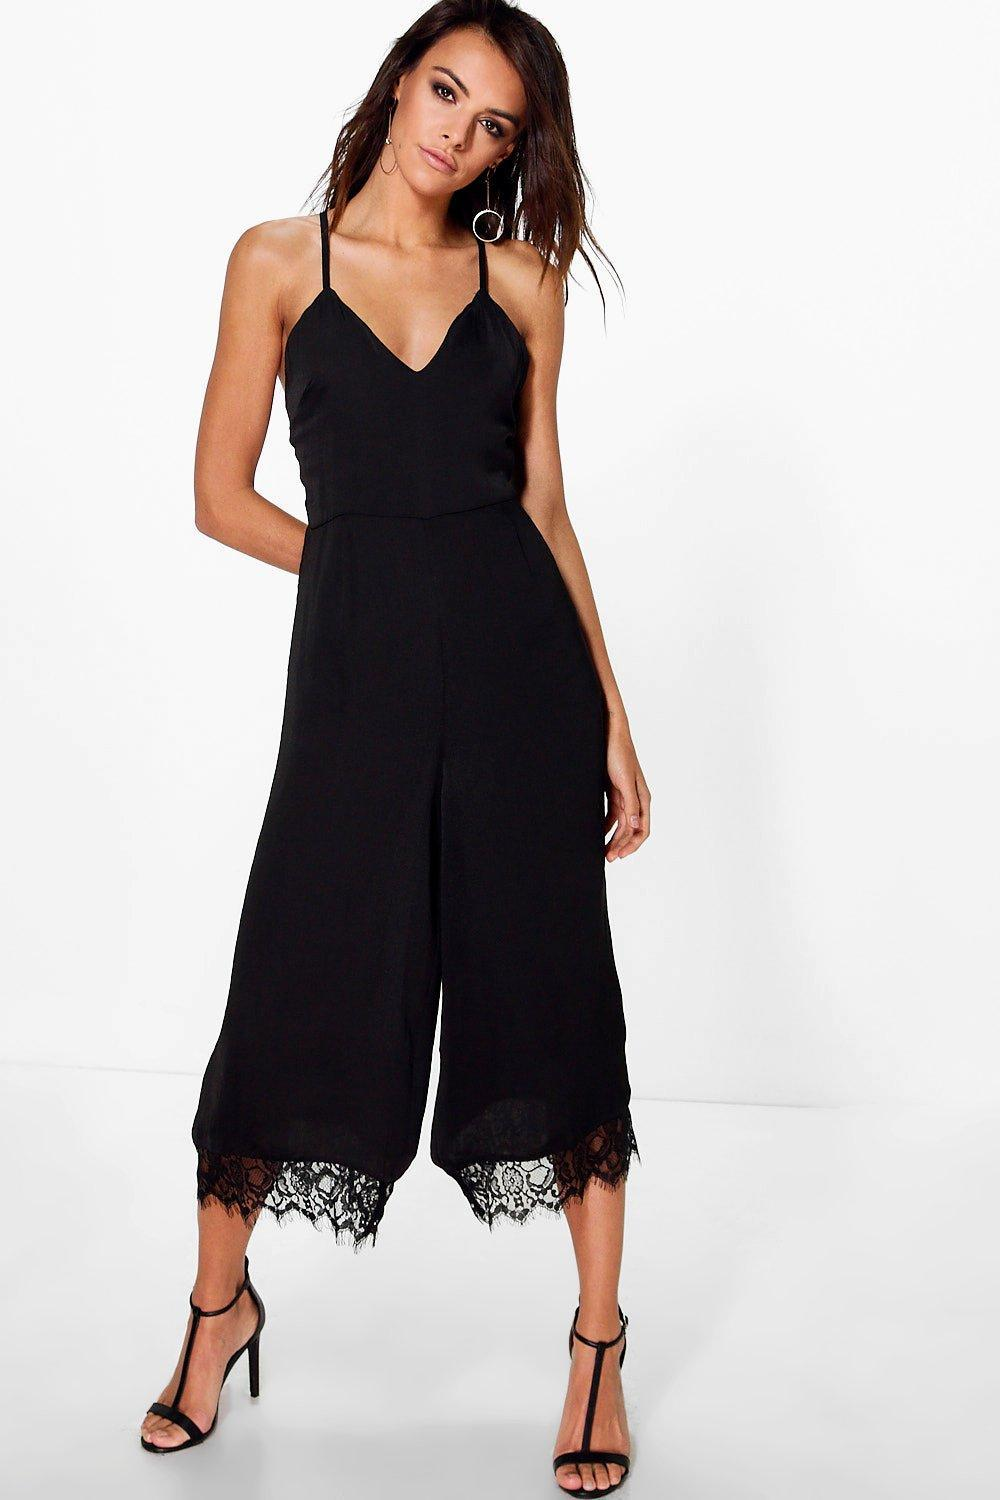 ce5efd7f89 Lyst - Boohoo Zoe Satin Strappy Lace Hem Culotte Jumpsuit in Black